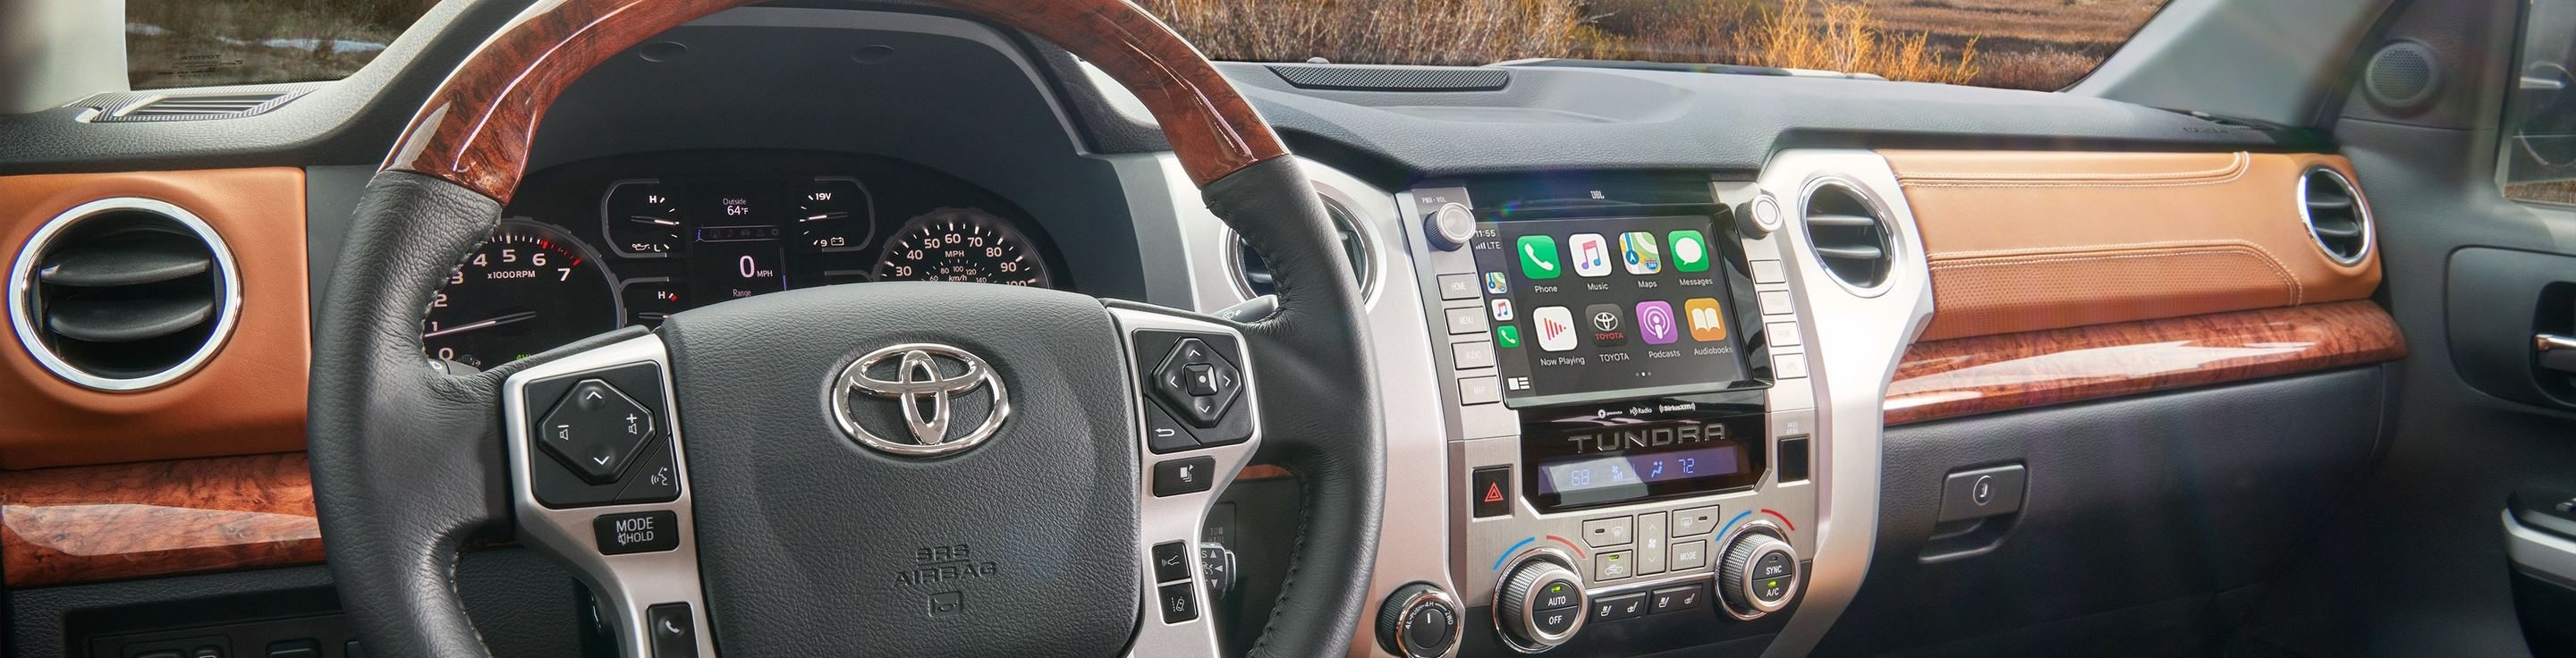 2020 Toyota Tundra Apple CarPlay®